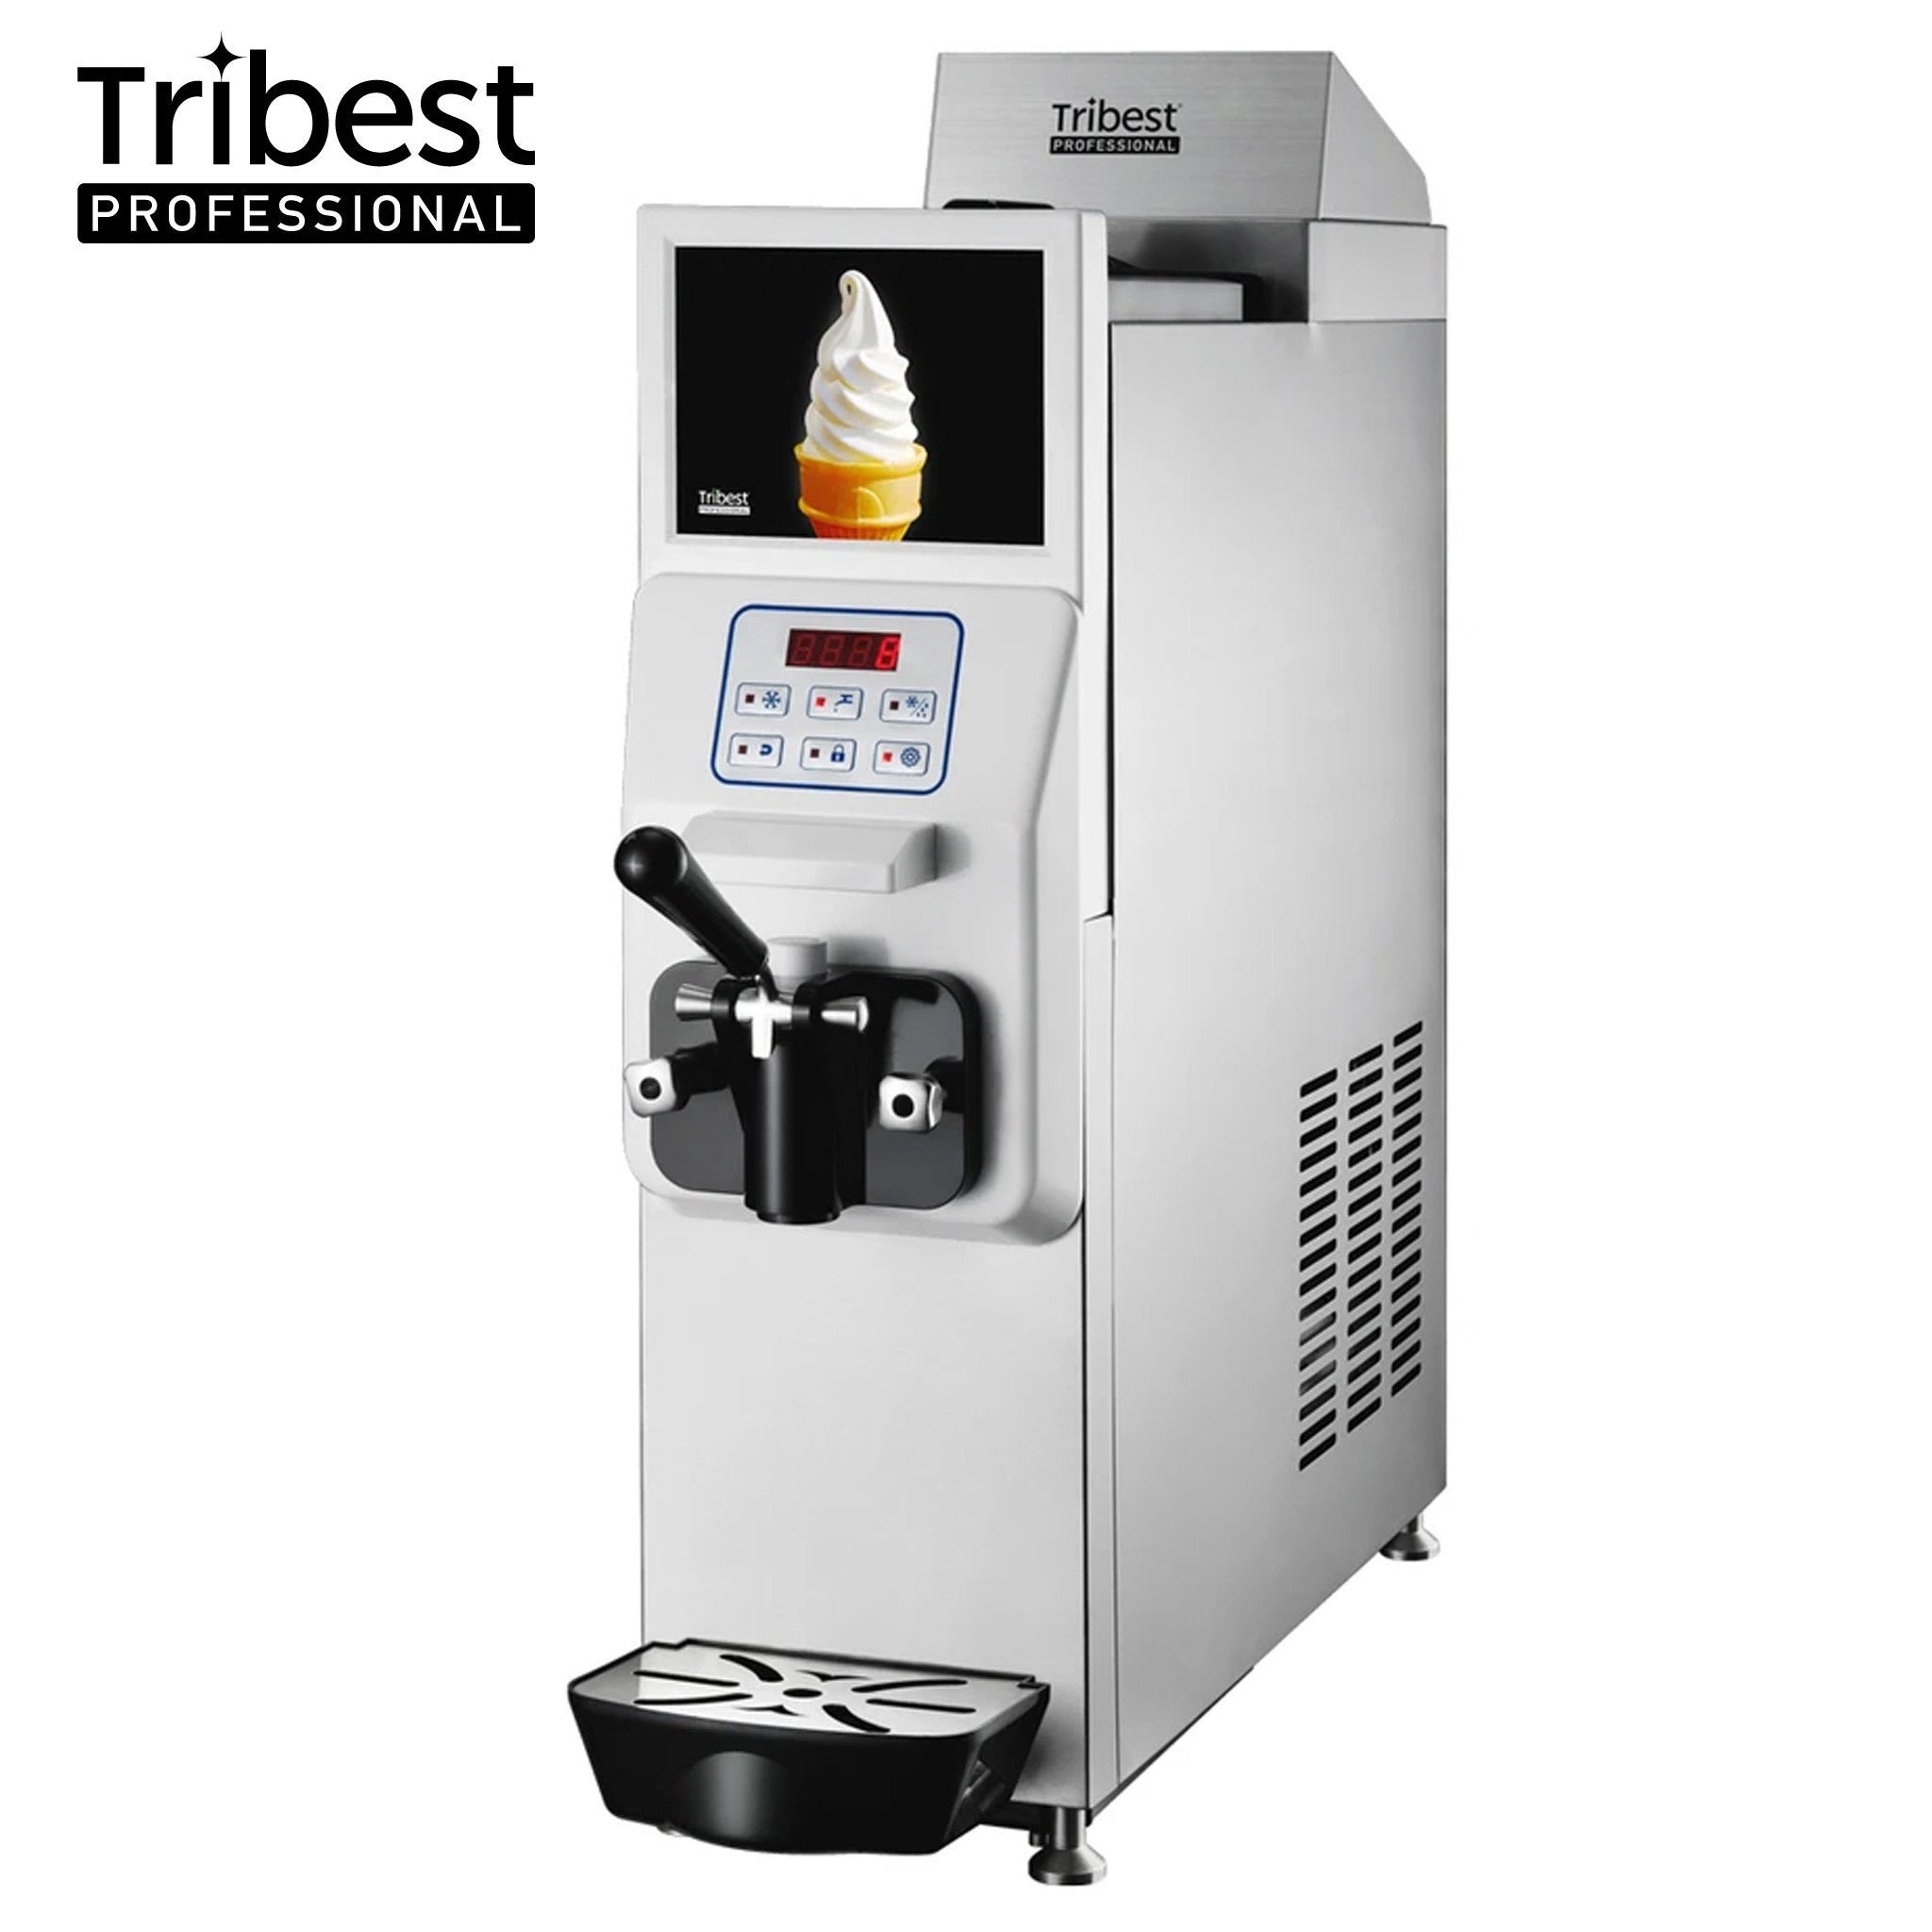 Tribest Professional Mini Soft Compact Single Soft-Serve Machine with LCD Screen